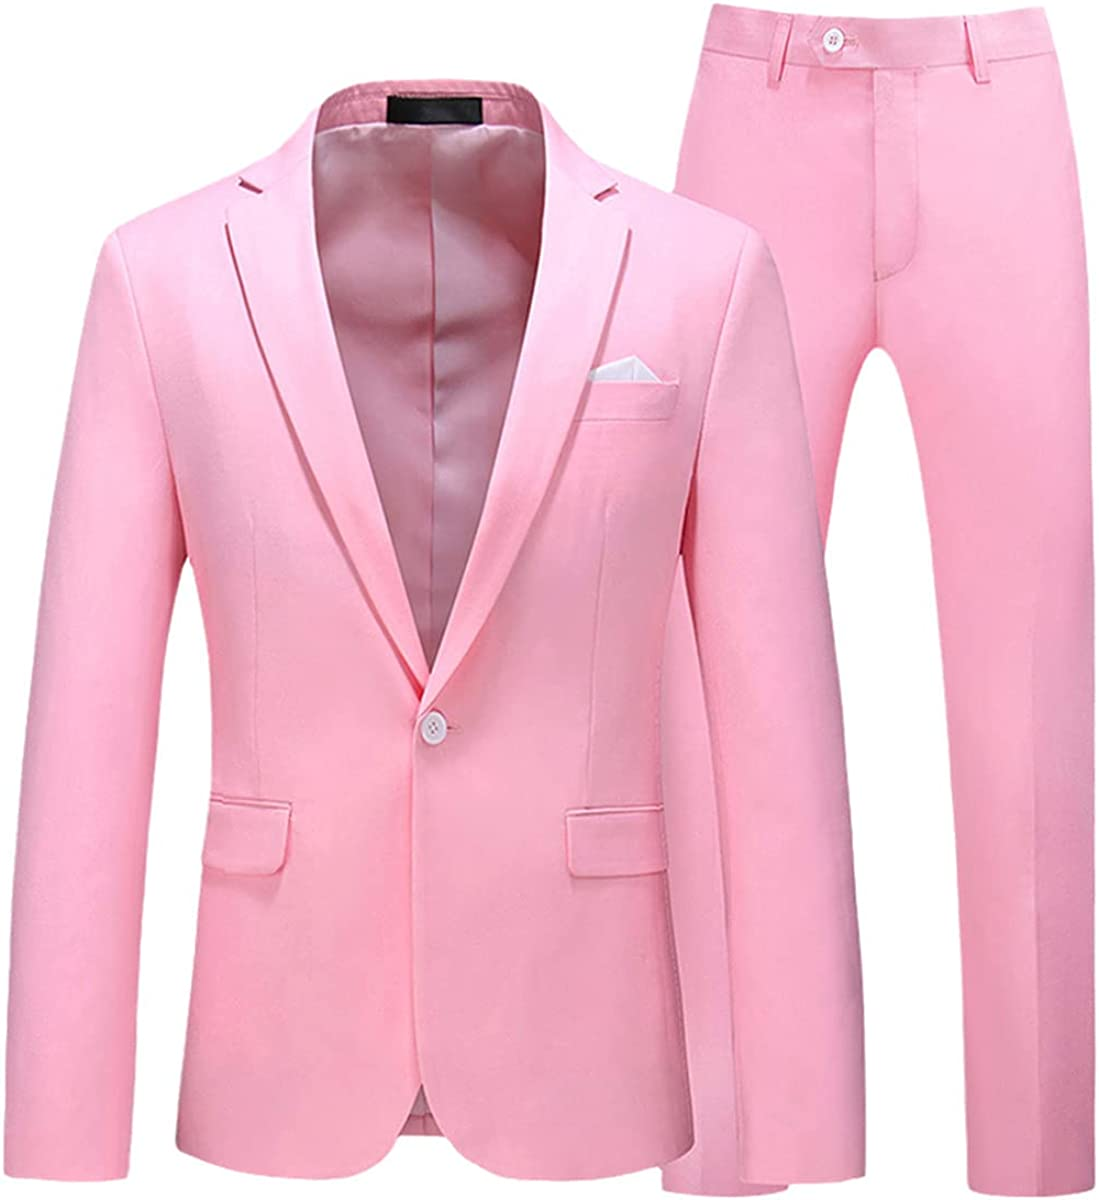 Men's Suit Jacket with Pants Candy Color Slim fit Formal Business Work Wedding Stage Tuxedo Suit